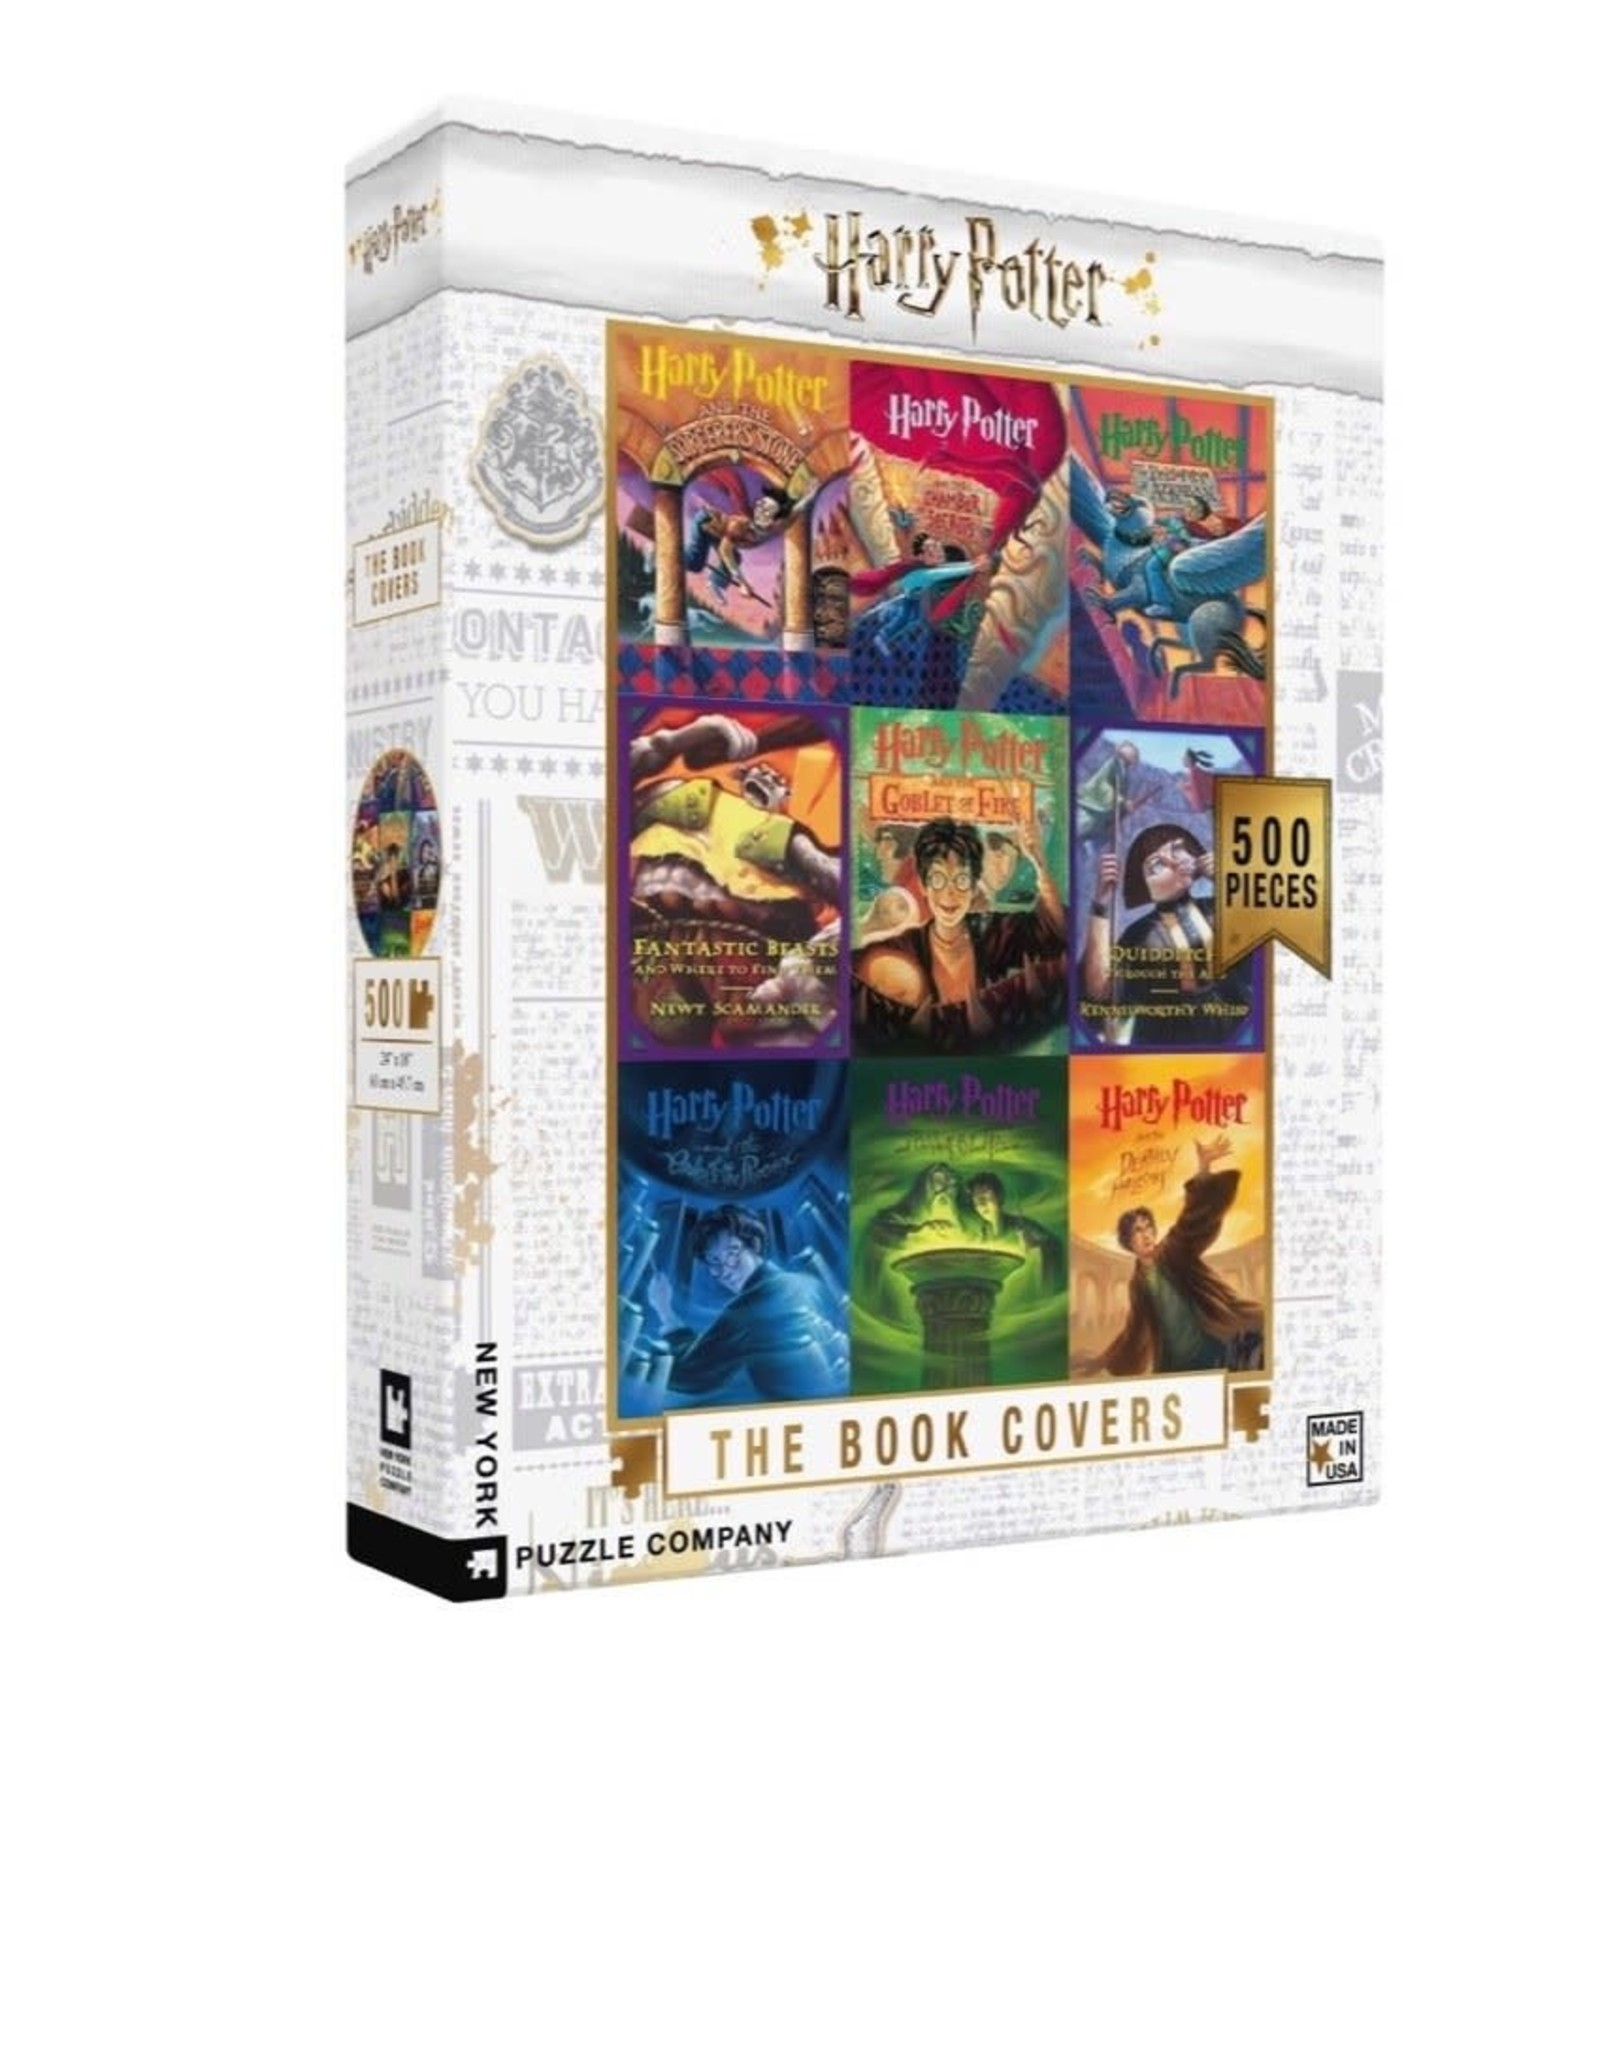 New York Puzzle Company Harry Potter Book Cover Collage 500 pieces